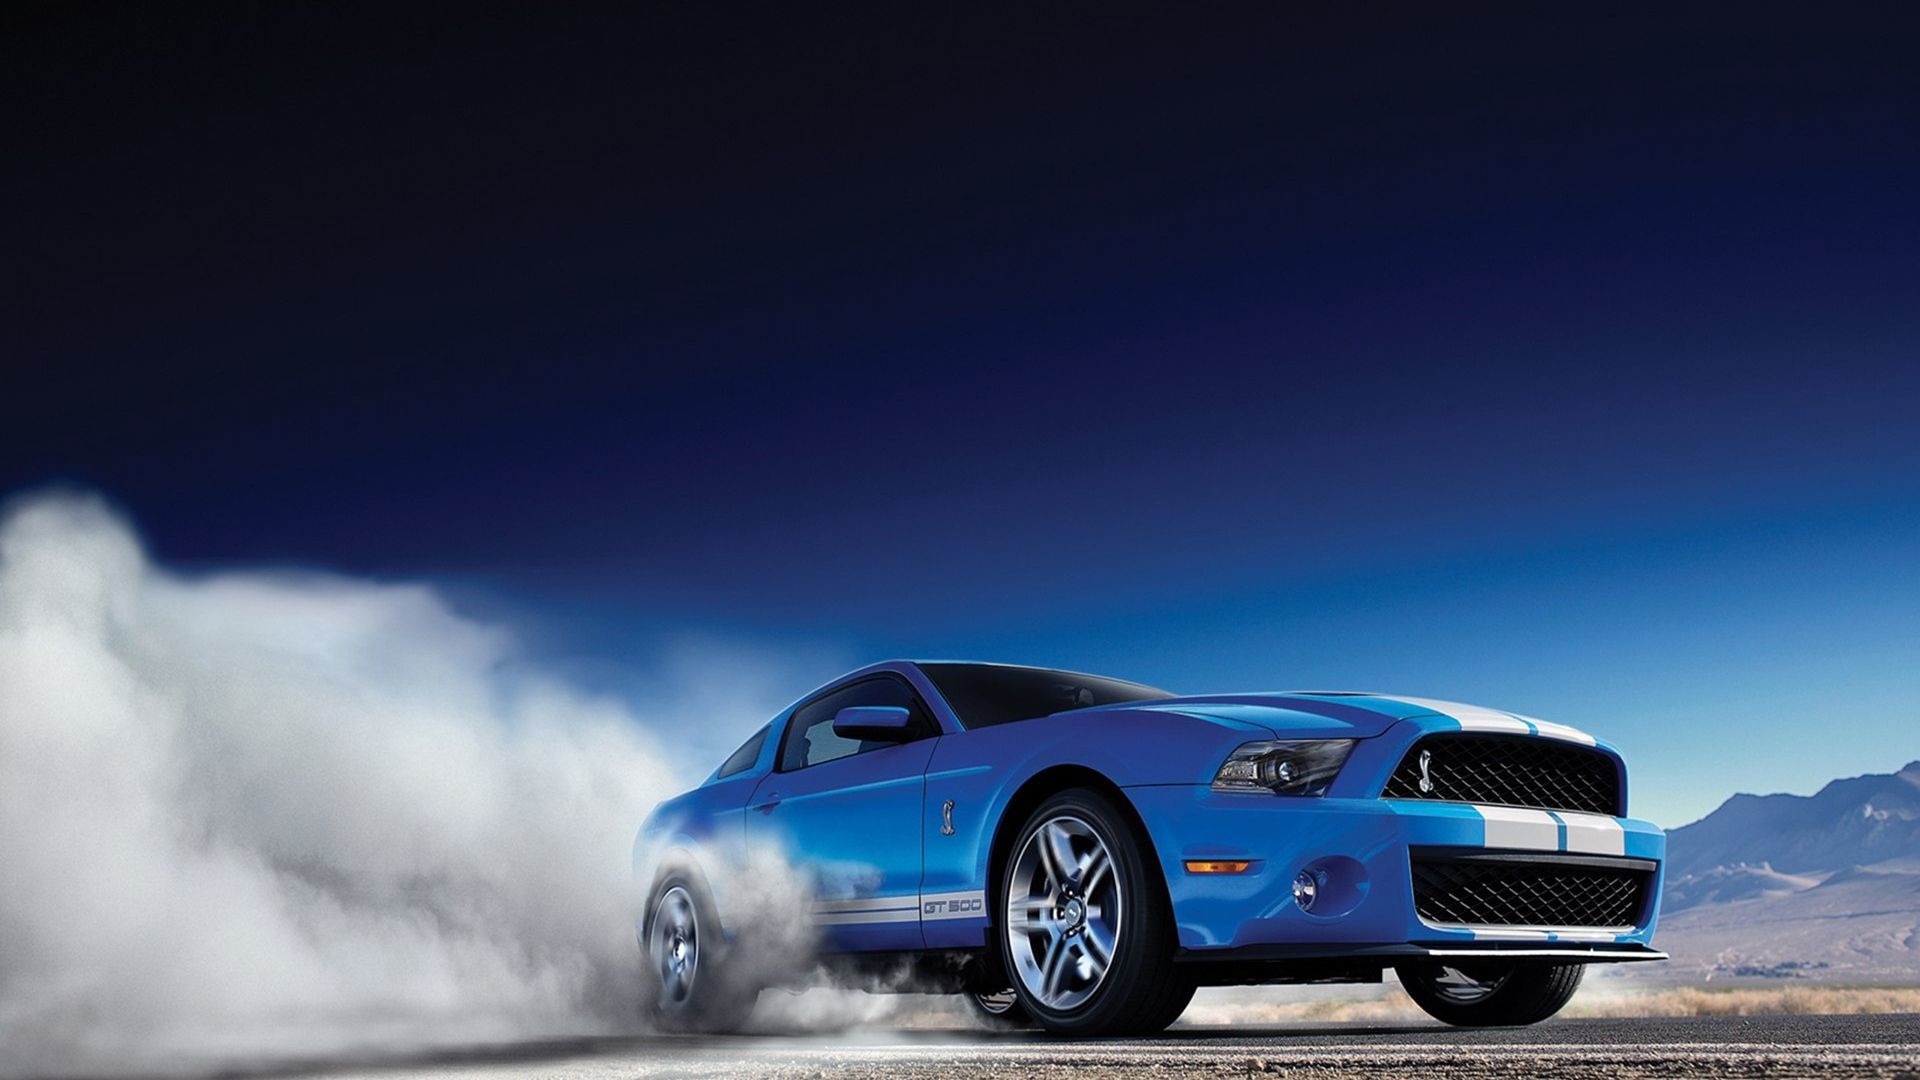 Ford Mustang Shelby Wallpapers Wallpaper